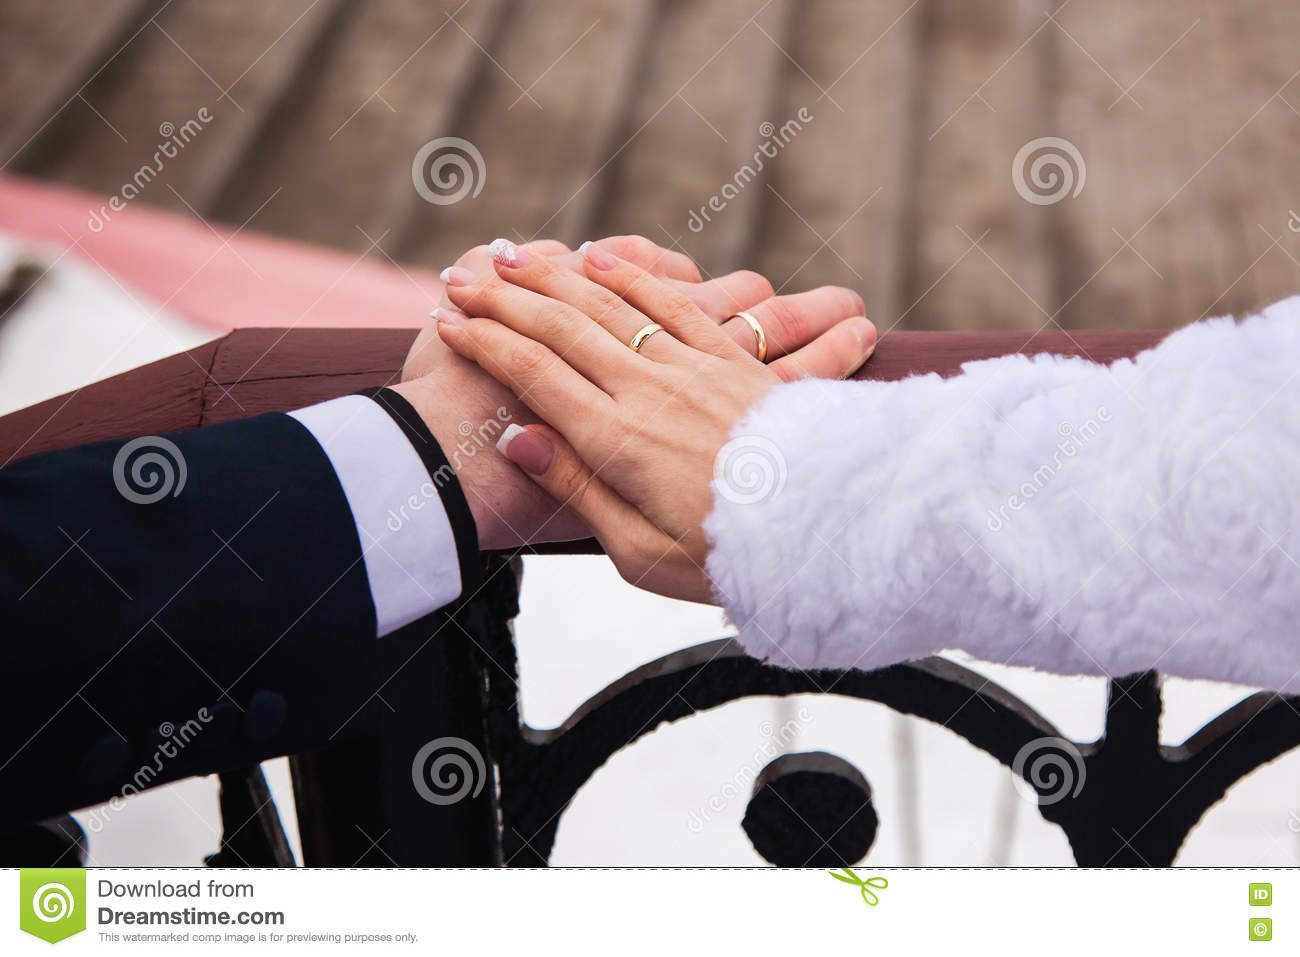 Which Hand Wedding Ring Female.Bride And Groom With Rings On Their Hands Male And Female Hand With